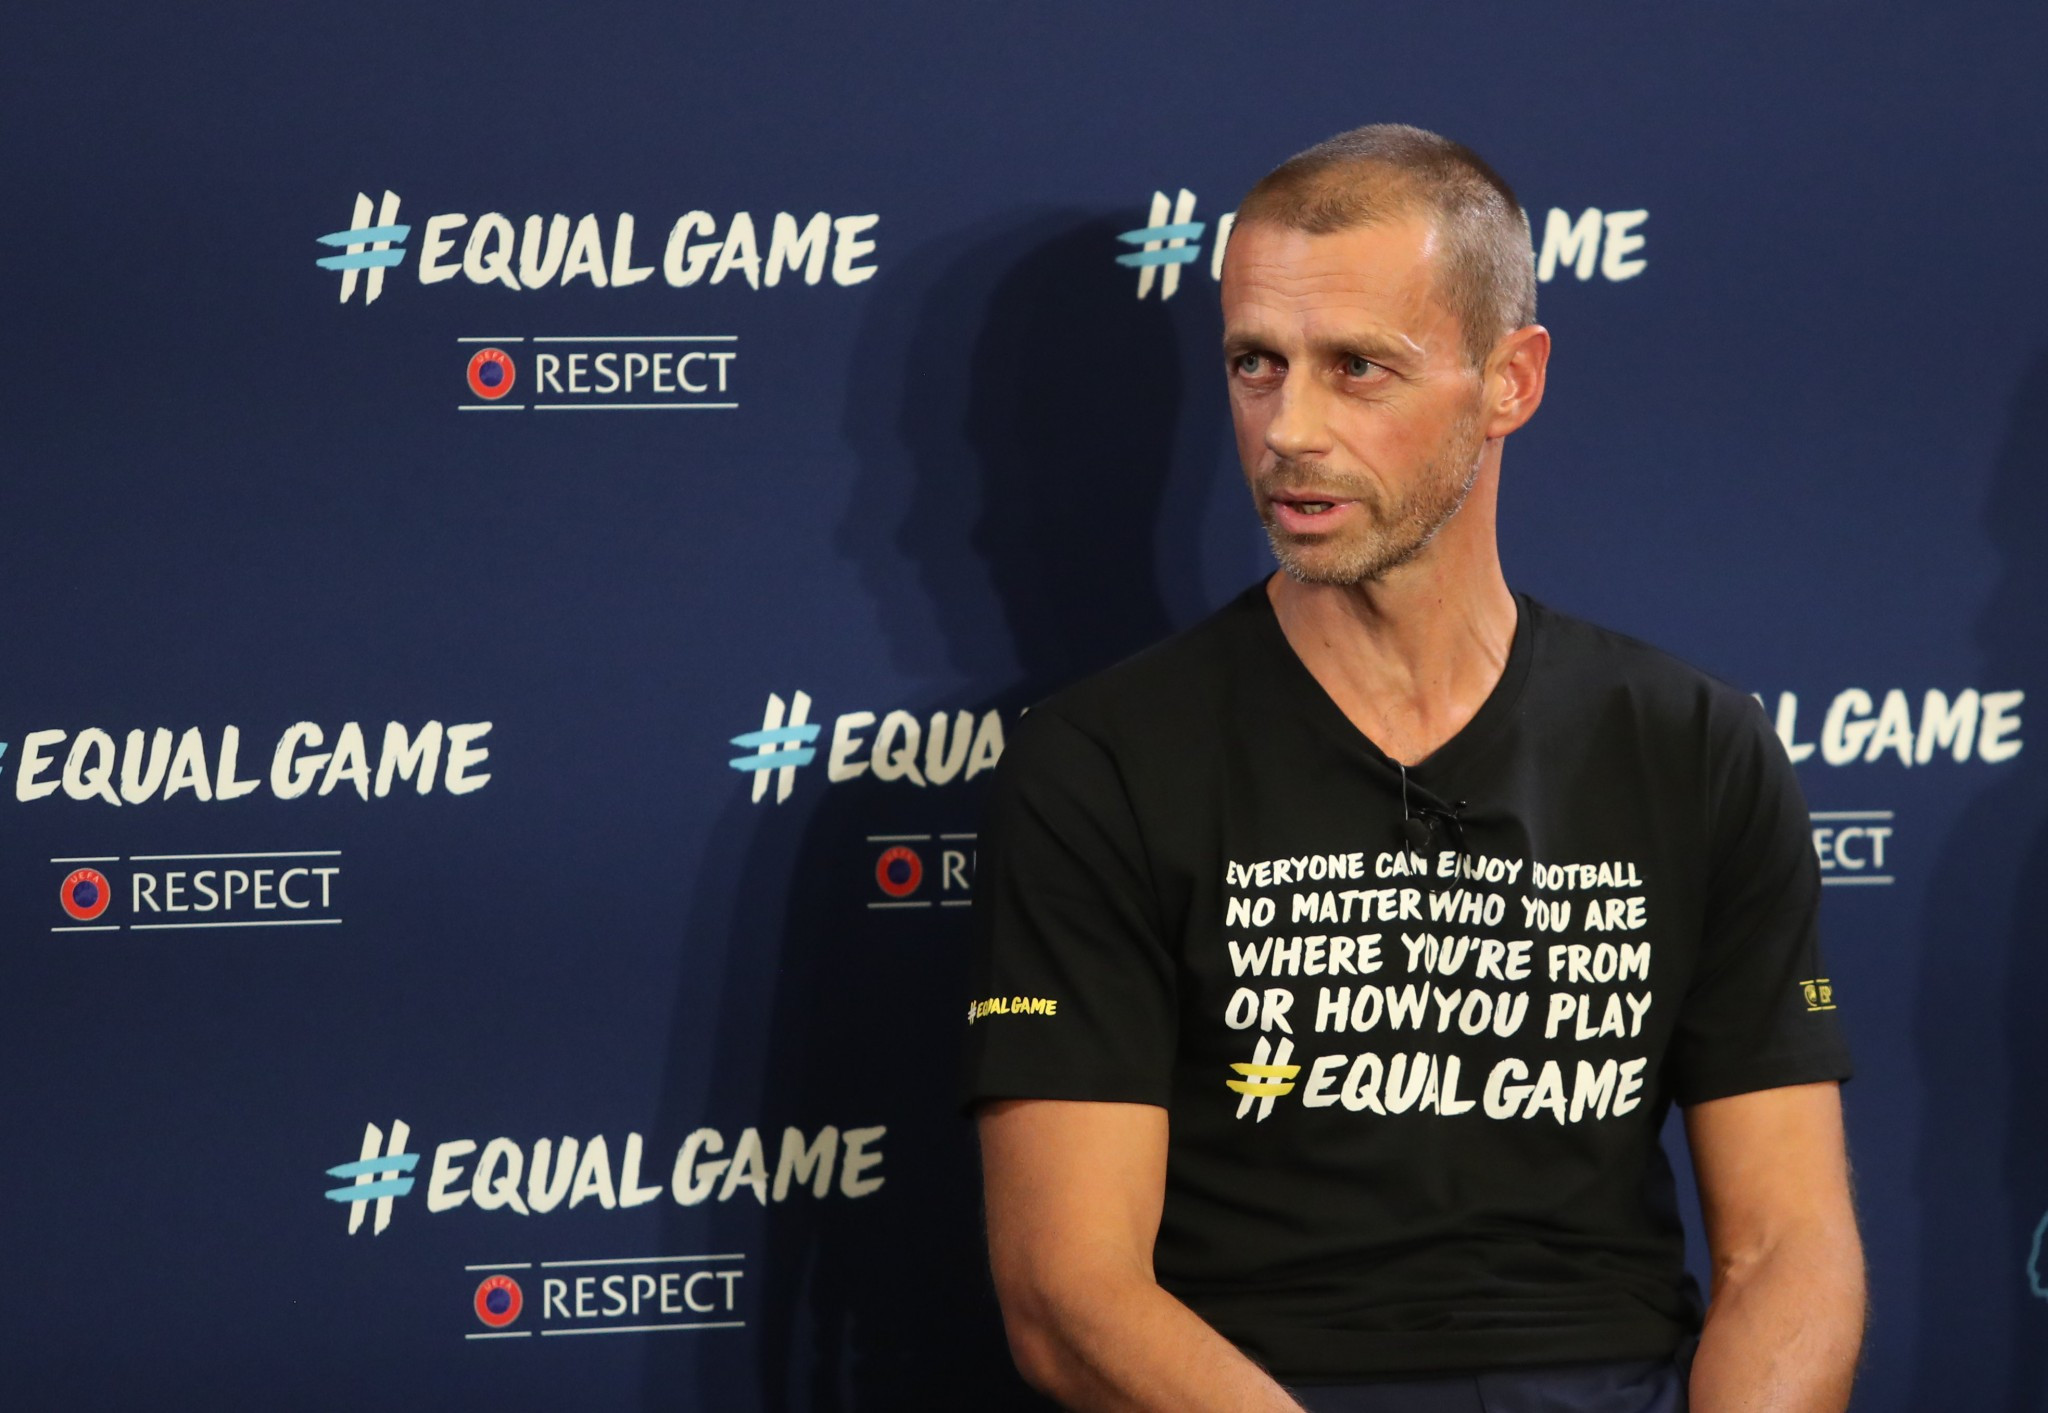 UEFA recruit global stars for respect campaign